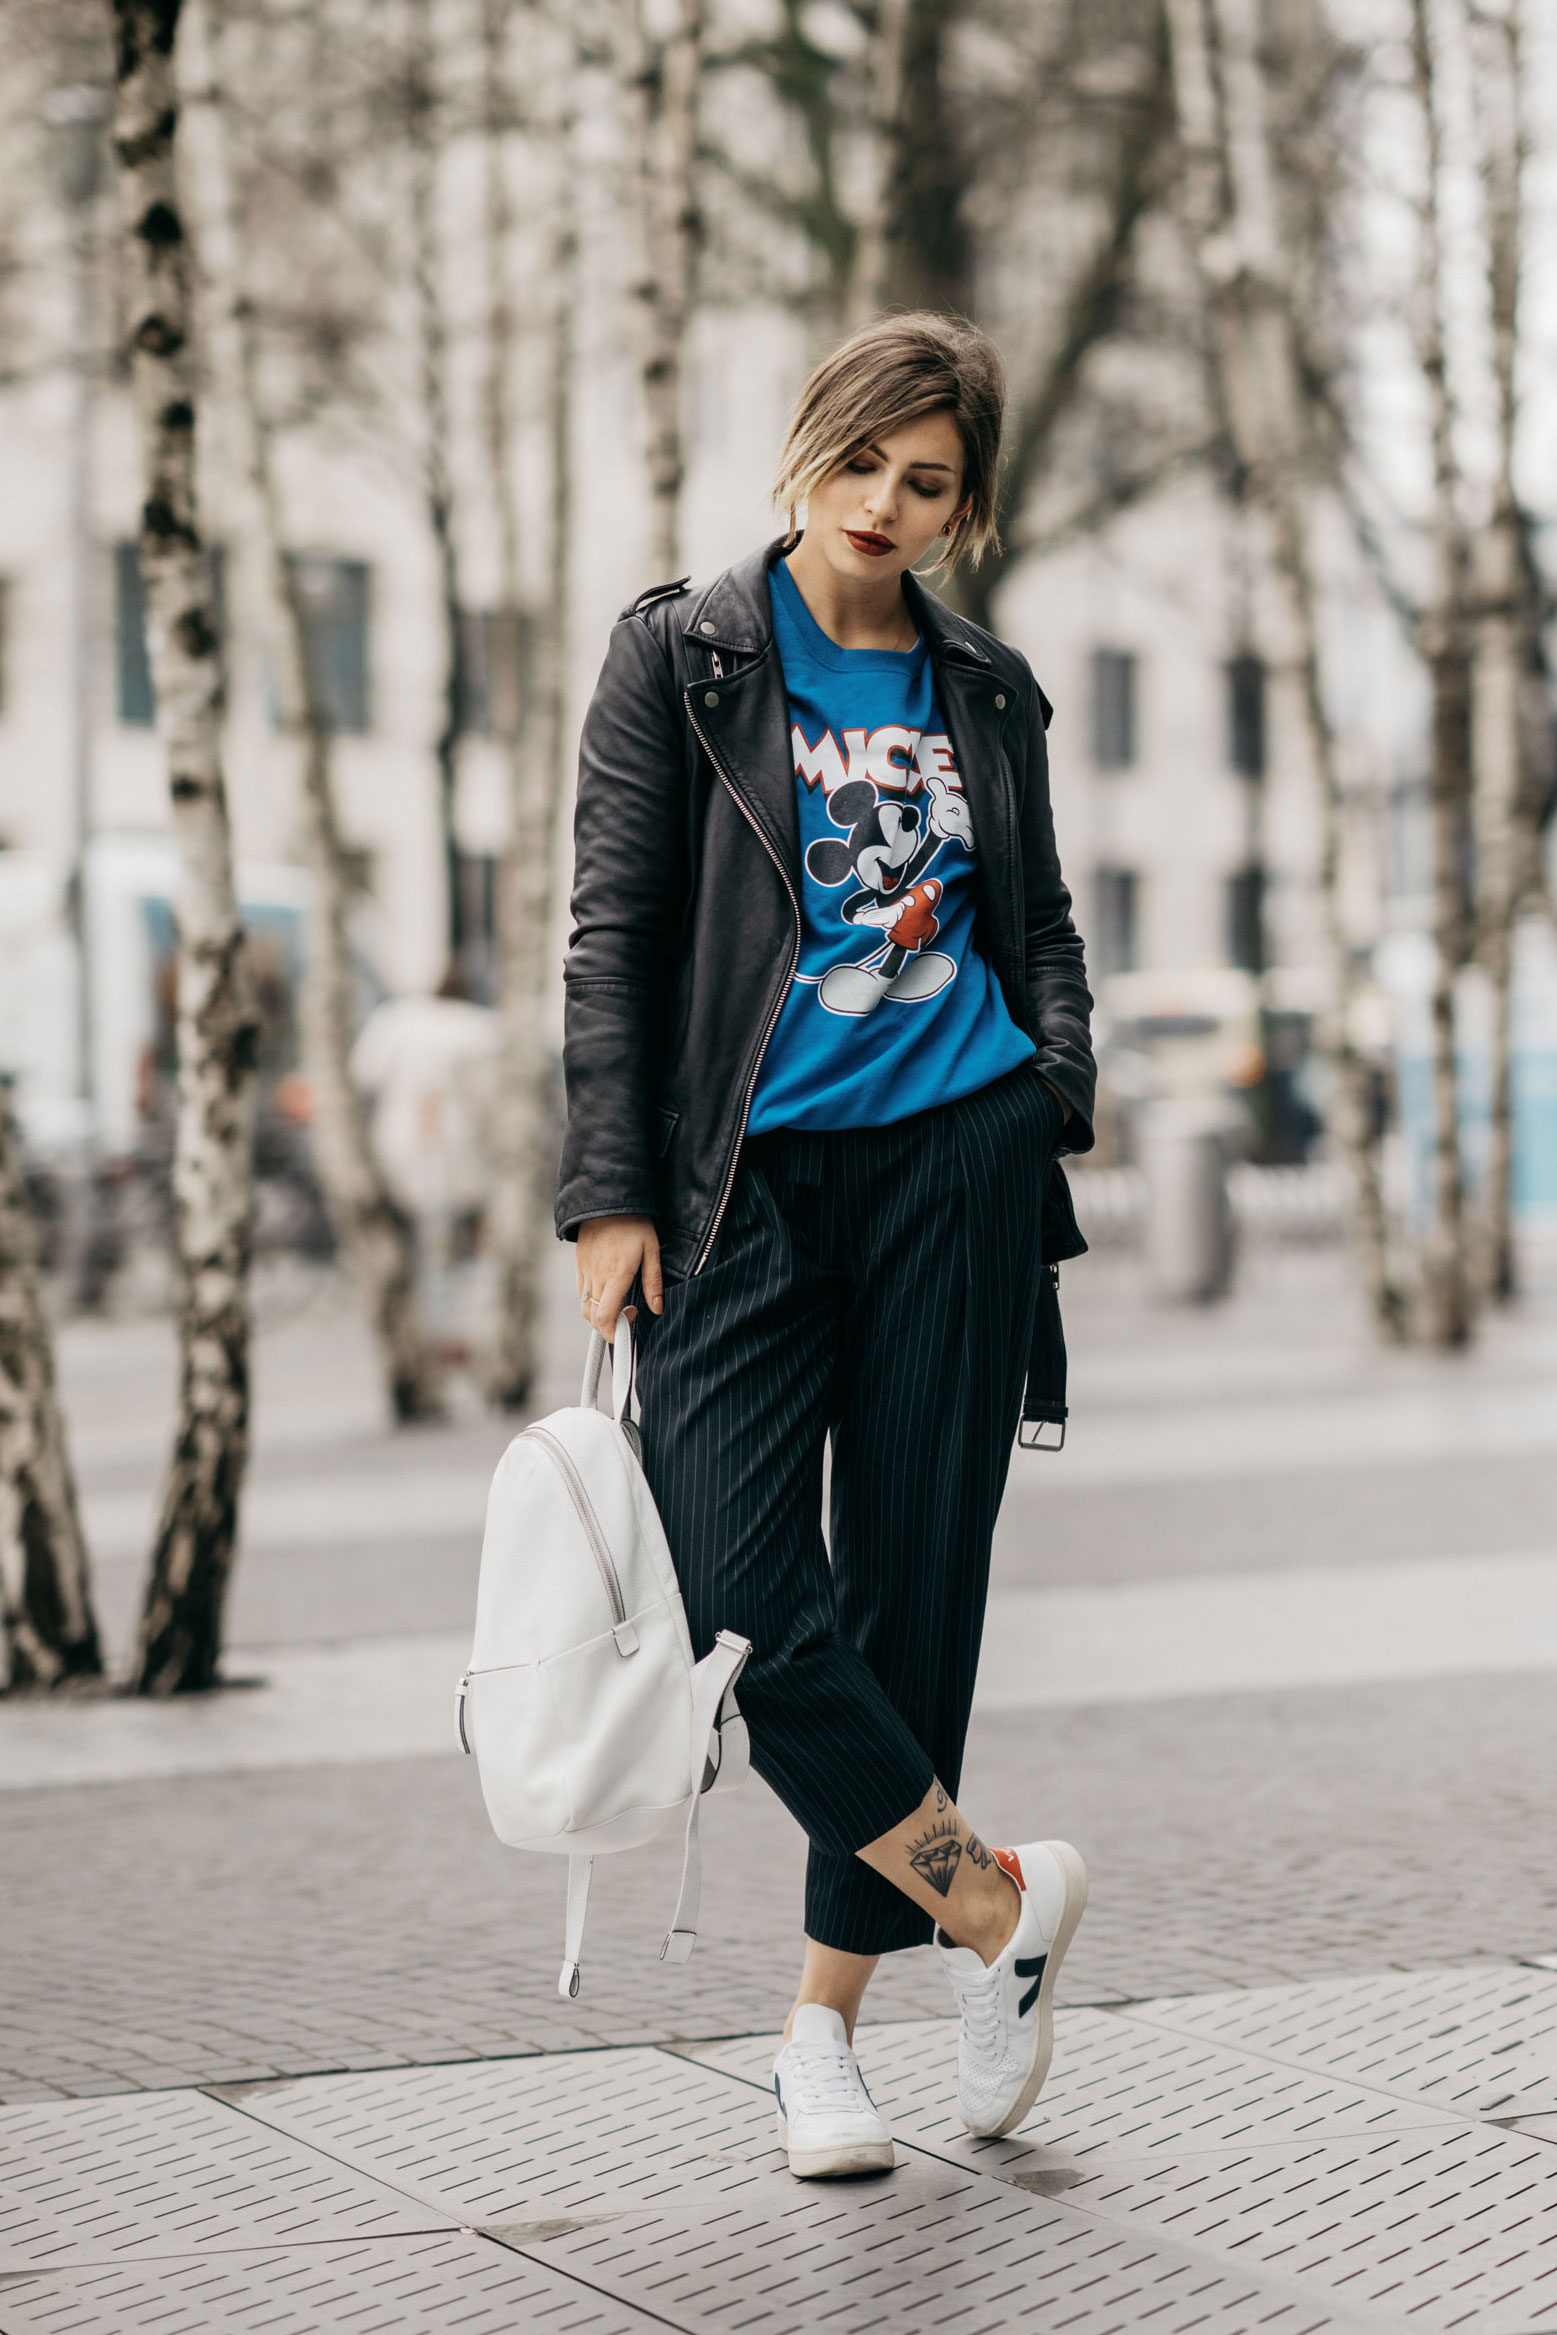 Masha Sedgwick | casual outfit in Berlin, Potsdamer Platz | street style: simple, daily, basic, Mickey Mouse sweater, effortless, sporty, funny